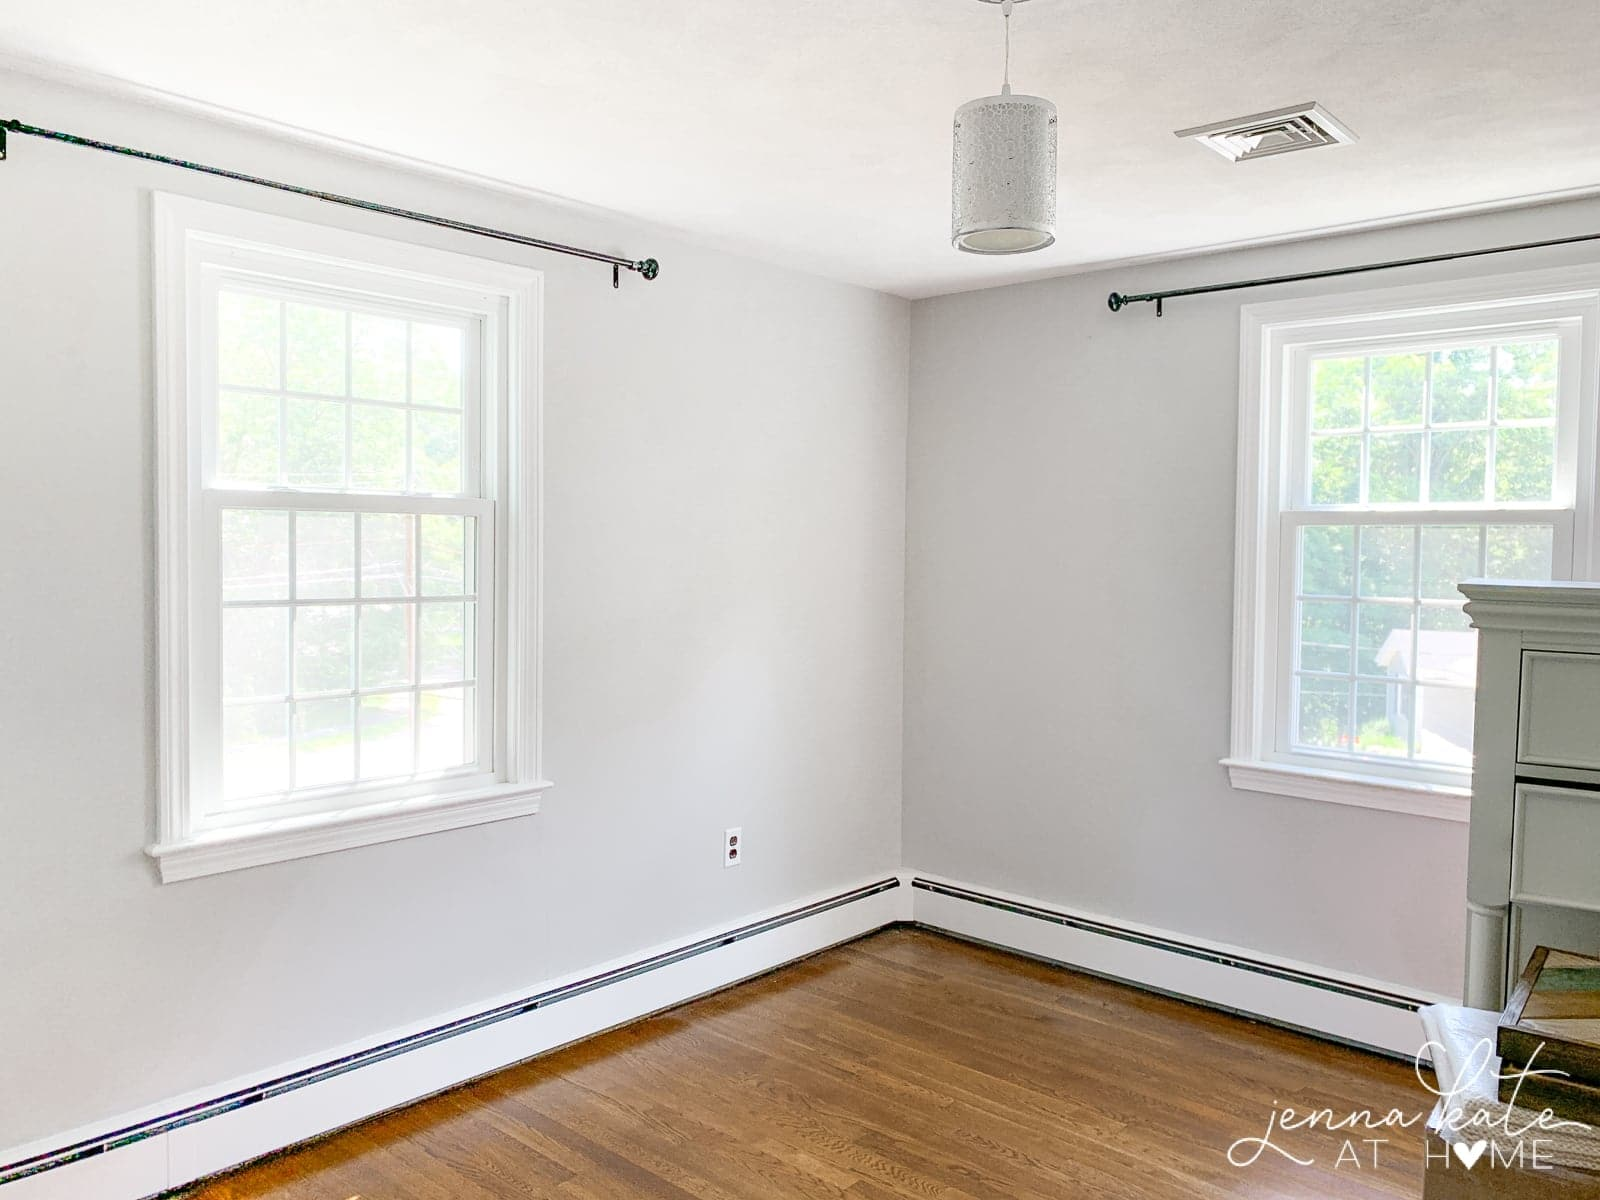 Repainting walls from Stonington Gray to Pure White